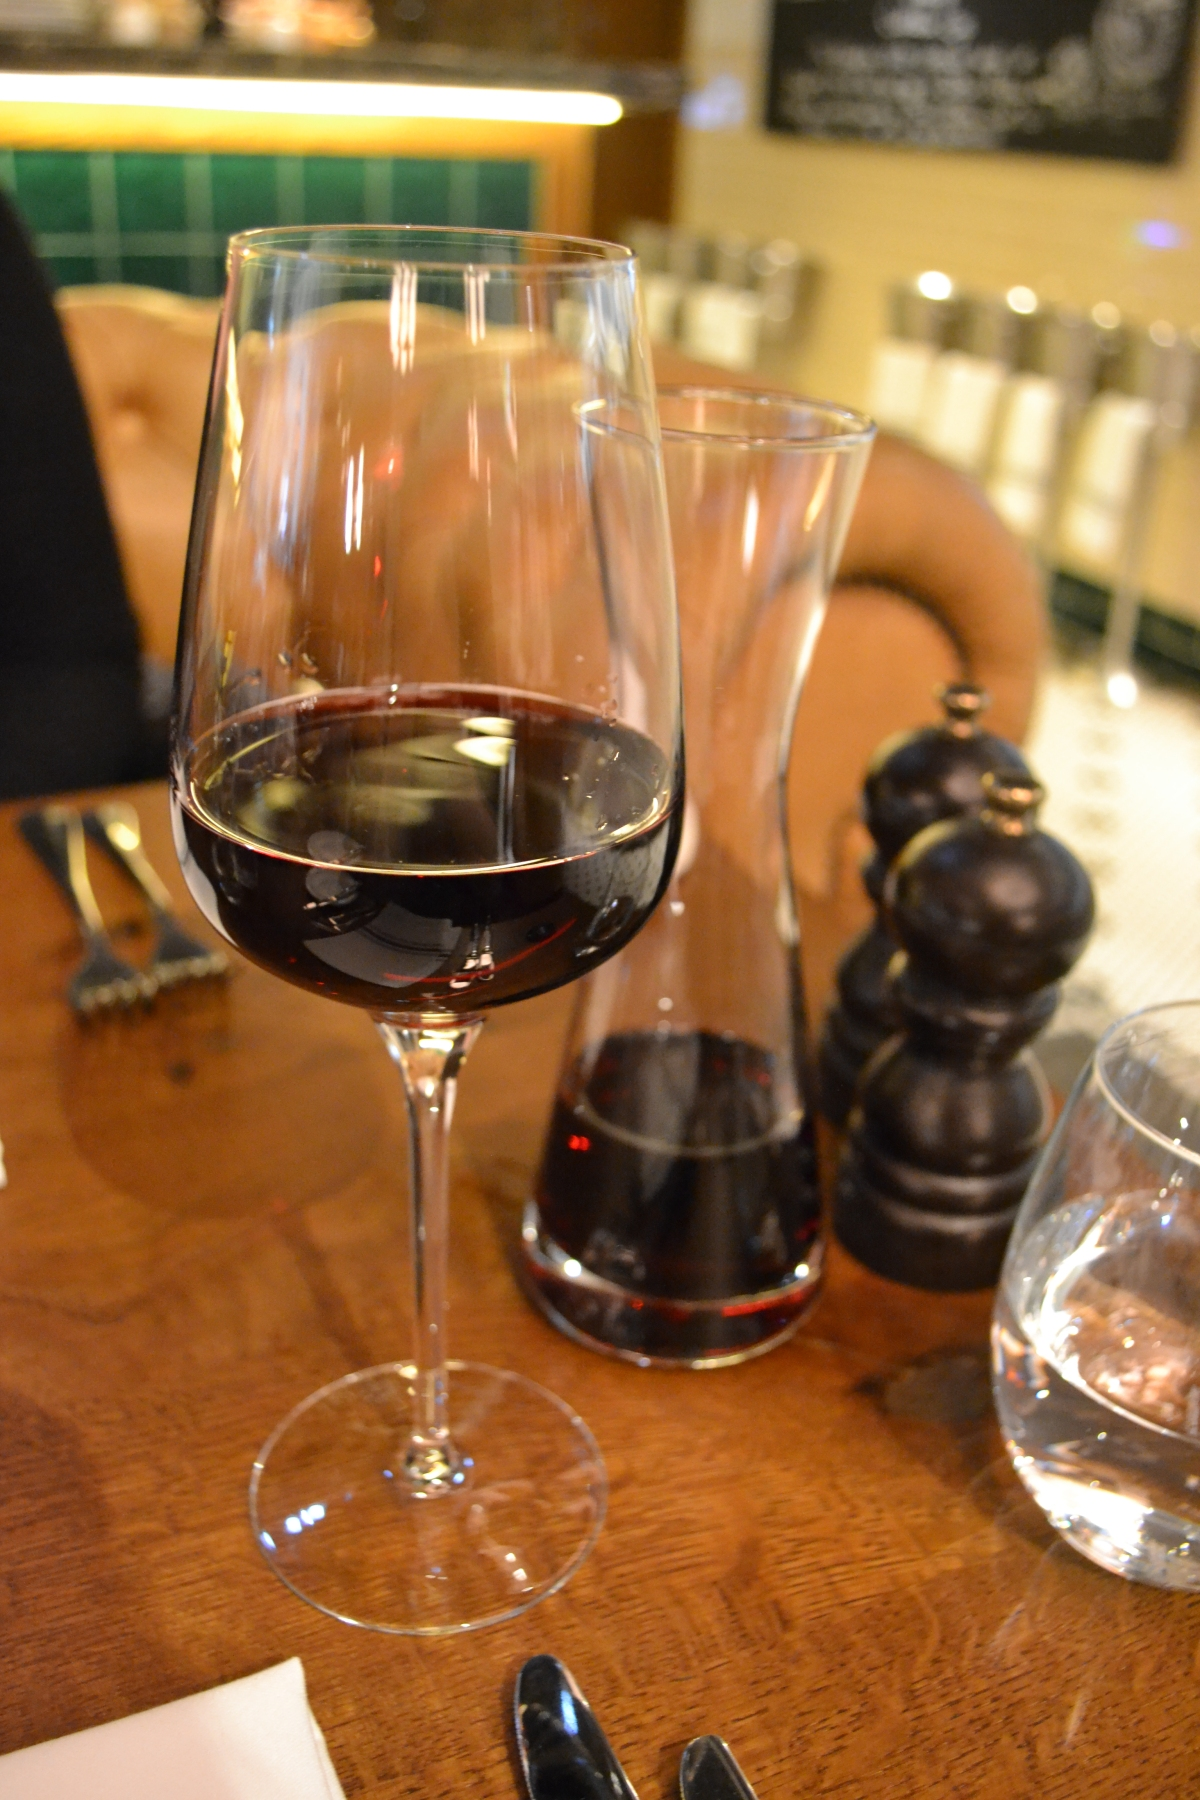 Gastronomic Gorman Tom's Kitchen Birmingham Review Wine